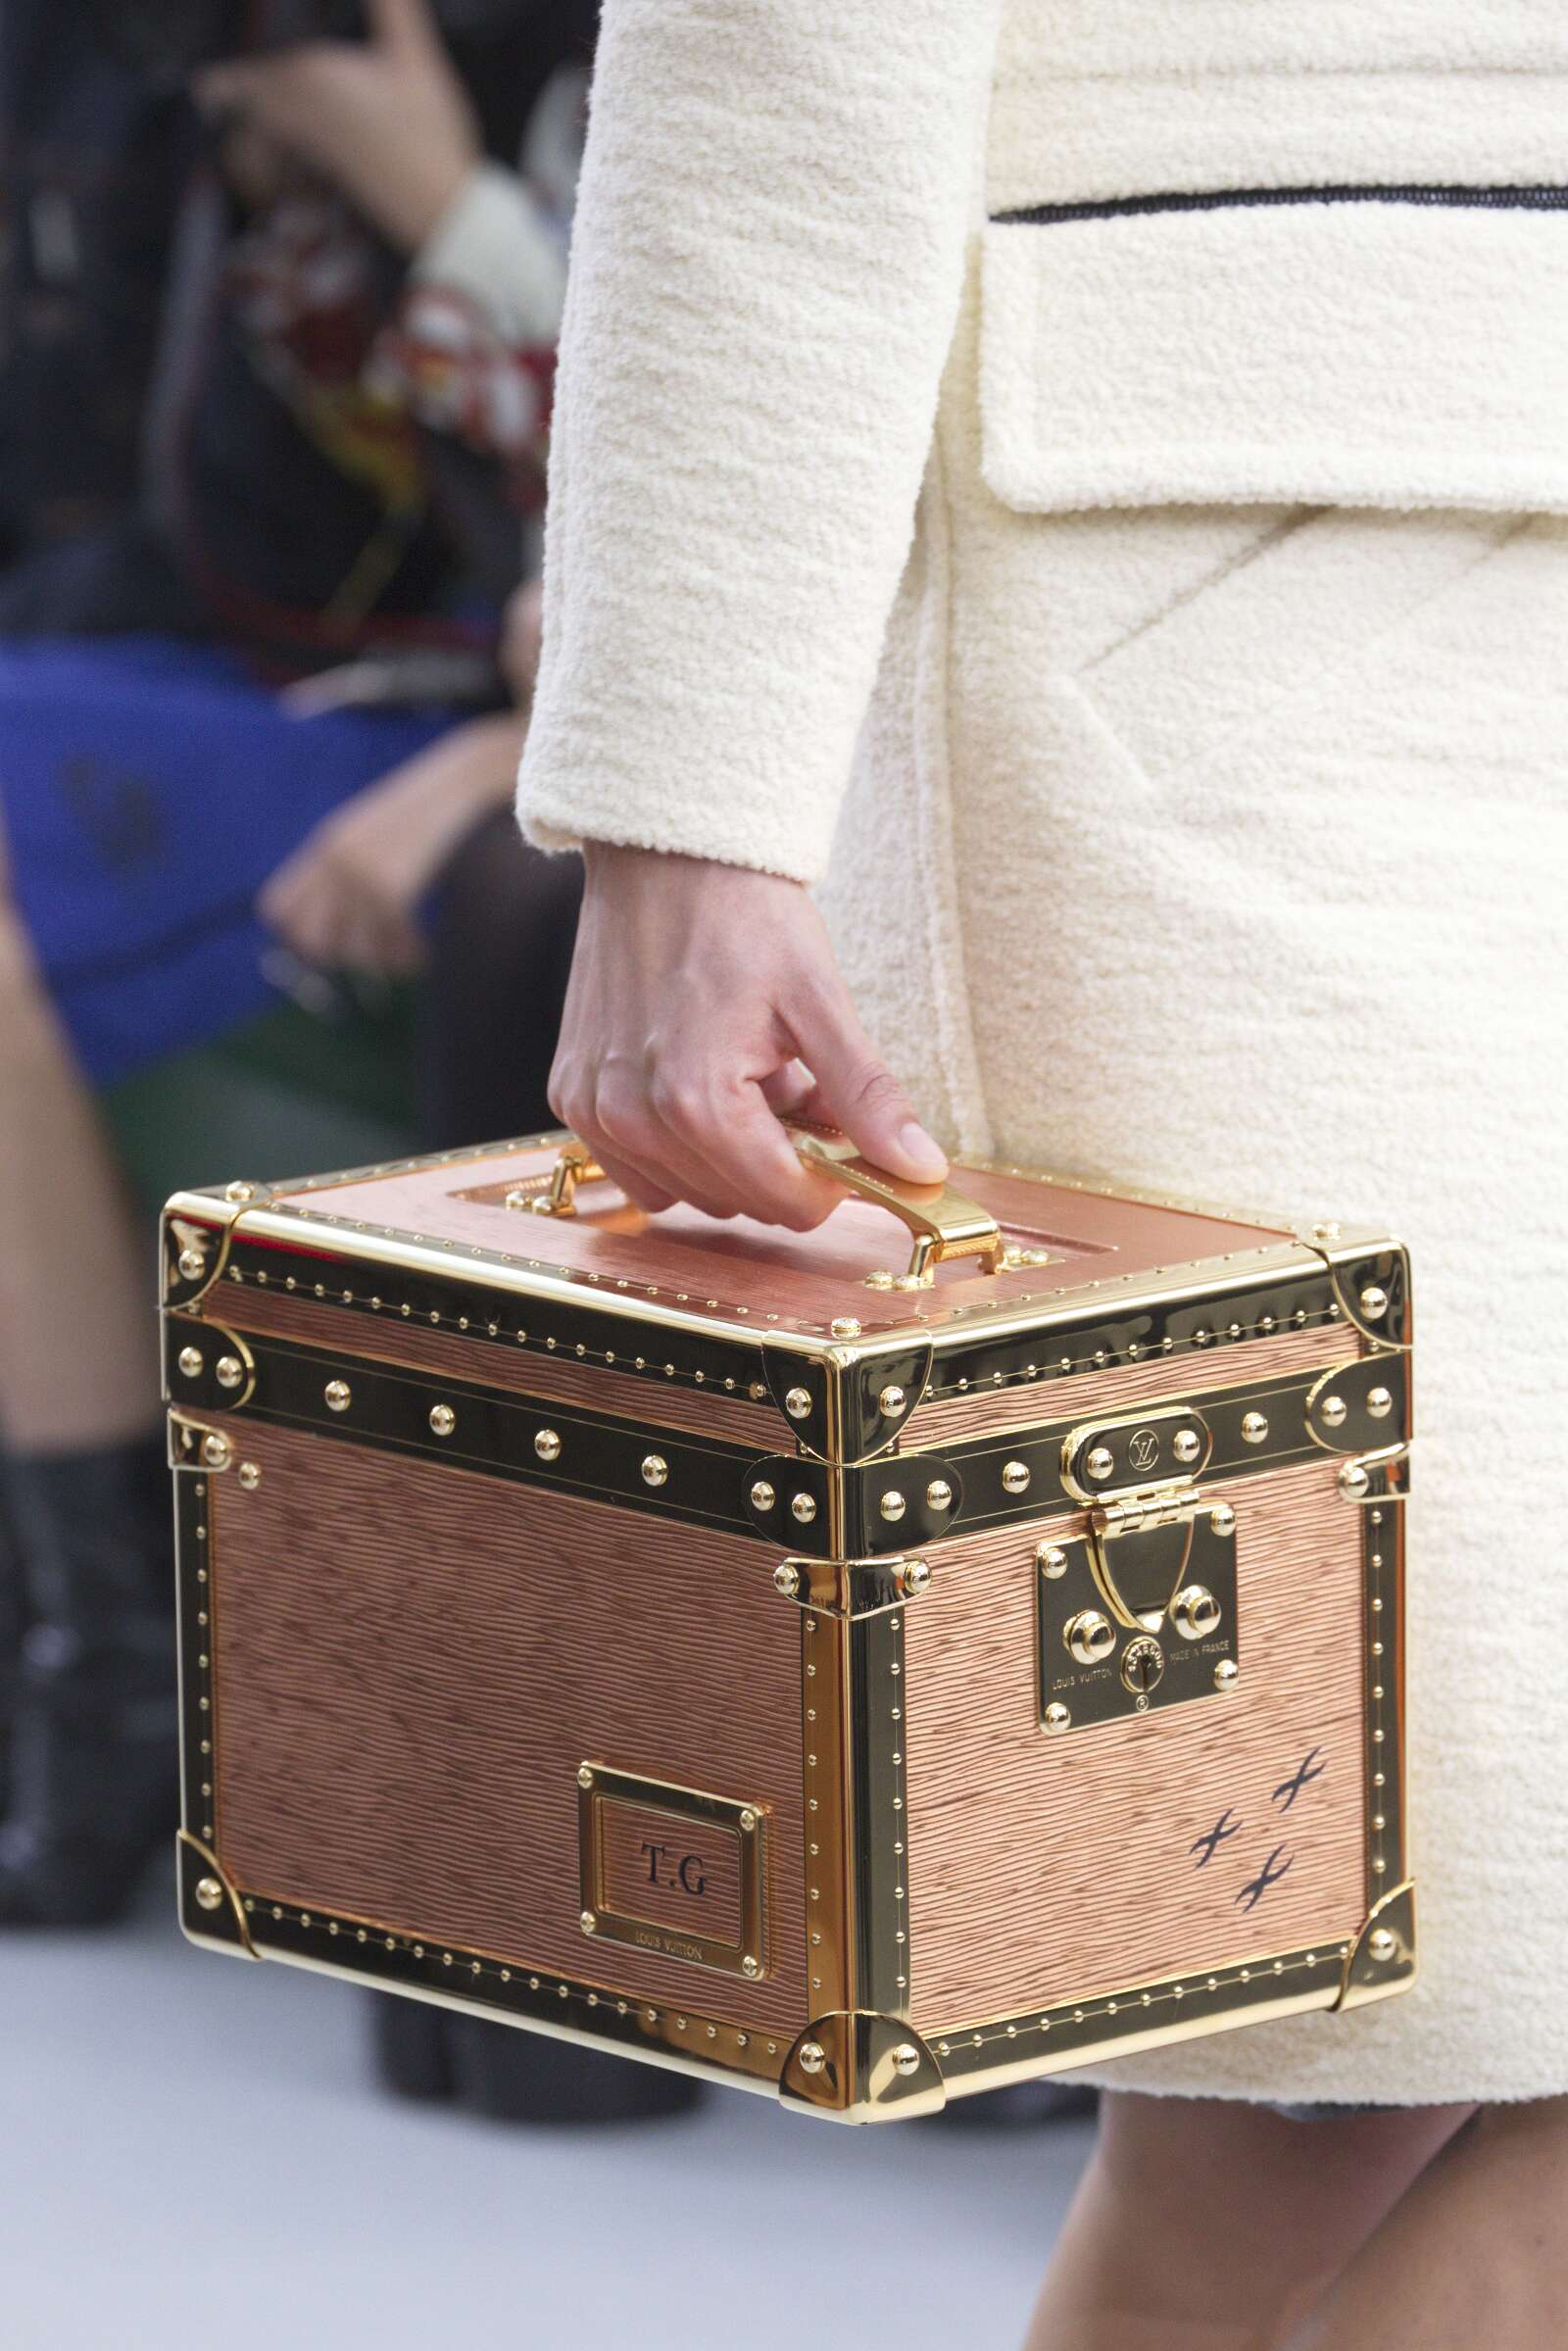 Runway Louis Vuitton Bag Details Fall Winter 2015 16 Women's Collection Paris Fashion Week